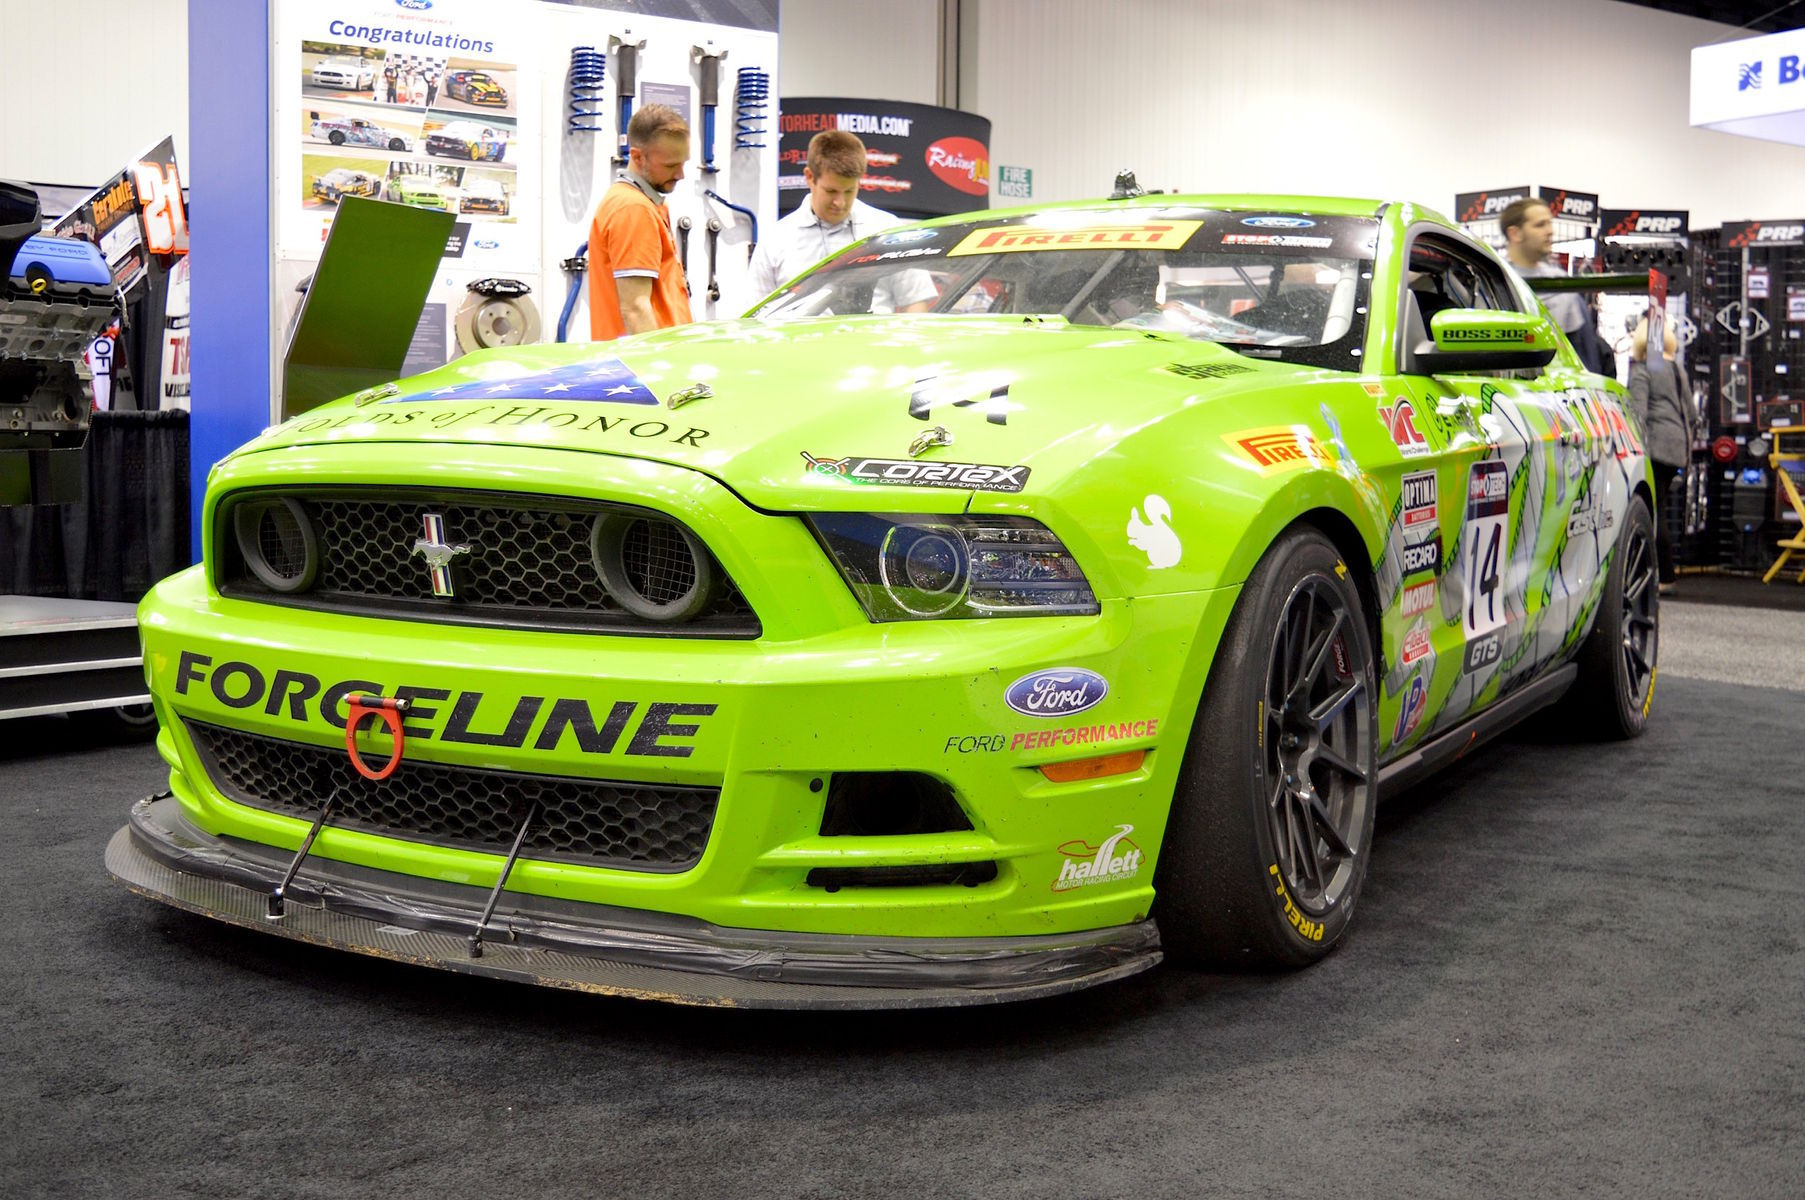 2014 Ford Mustang | Nate Stacy's Rehagen Racing Ford Mustang Boss 302 on Forgeline 1pc Forged Monoblosk GS1R Wheels